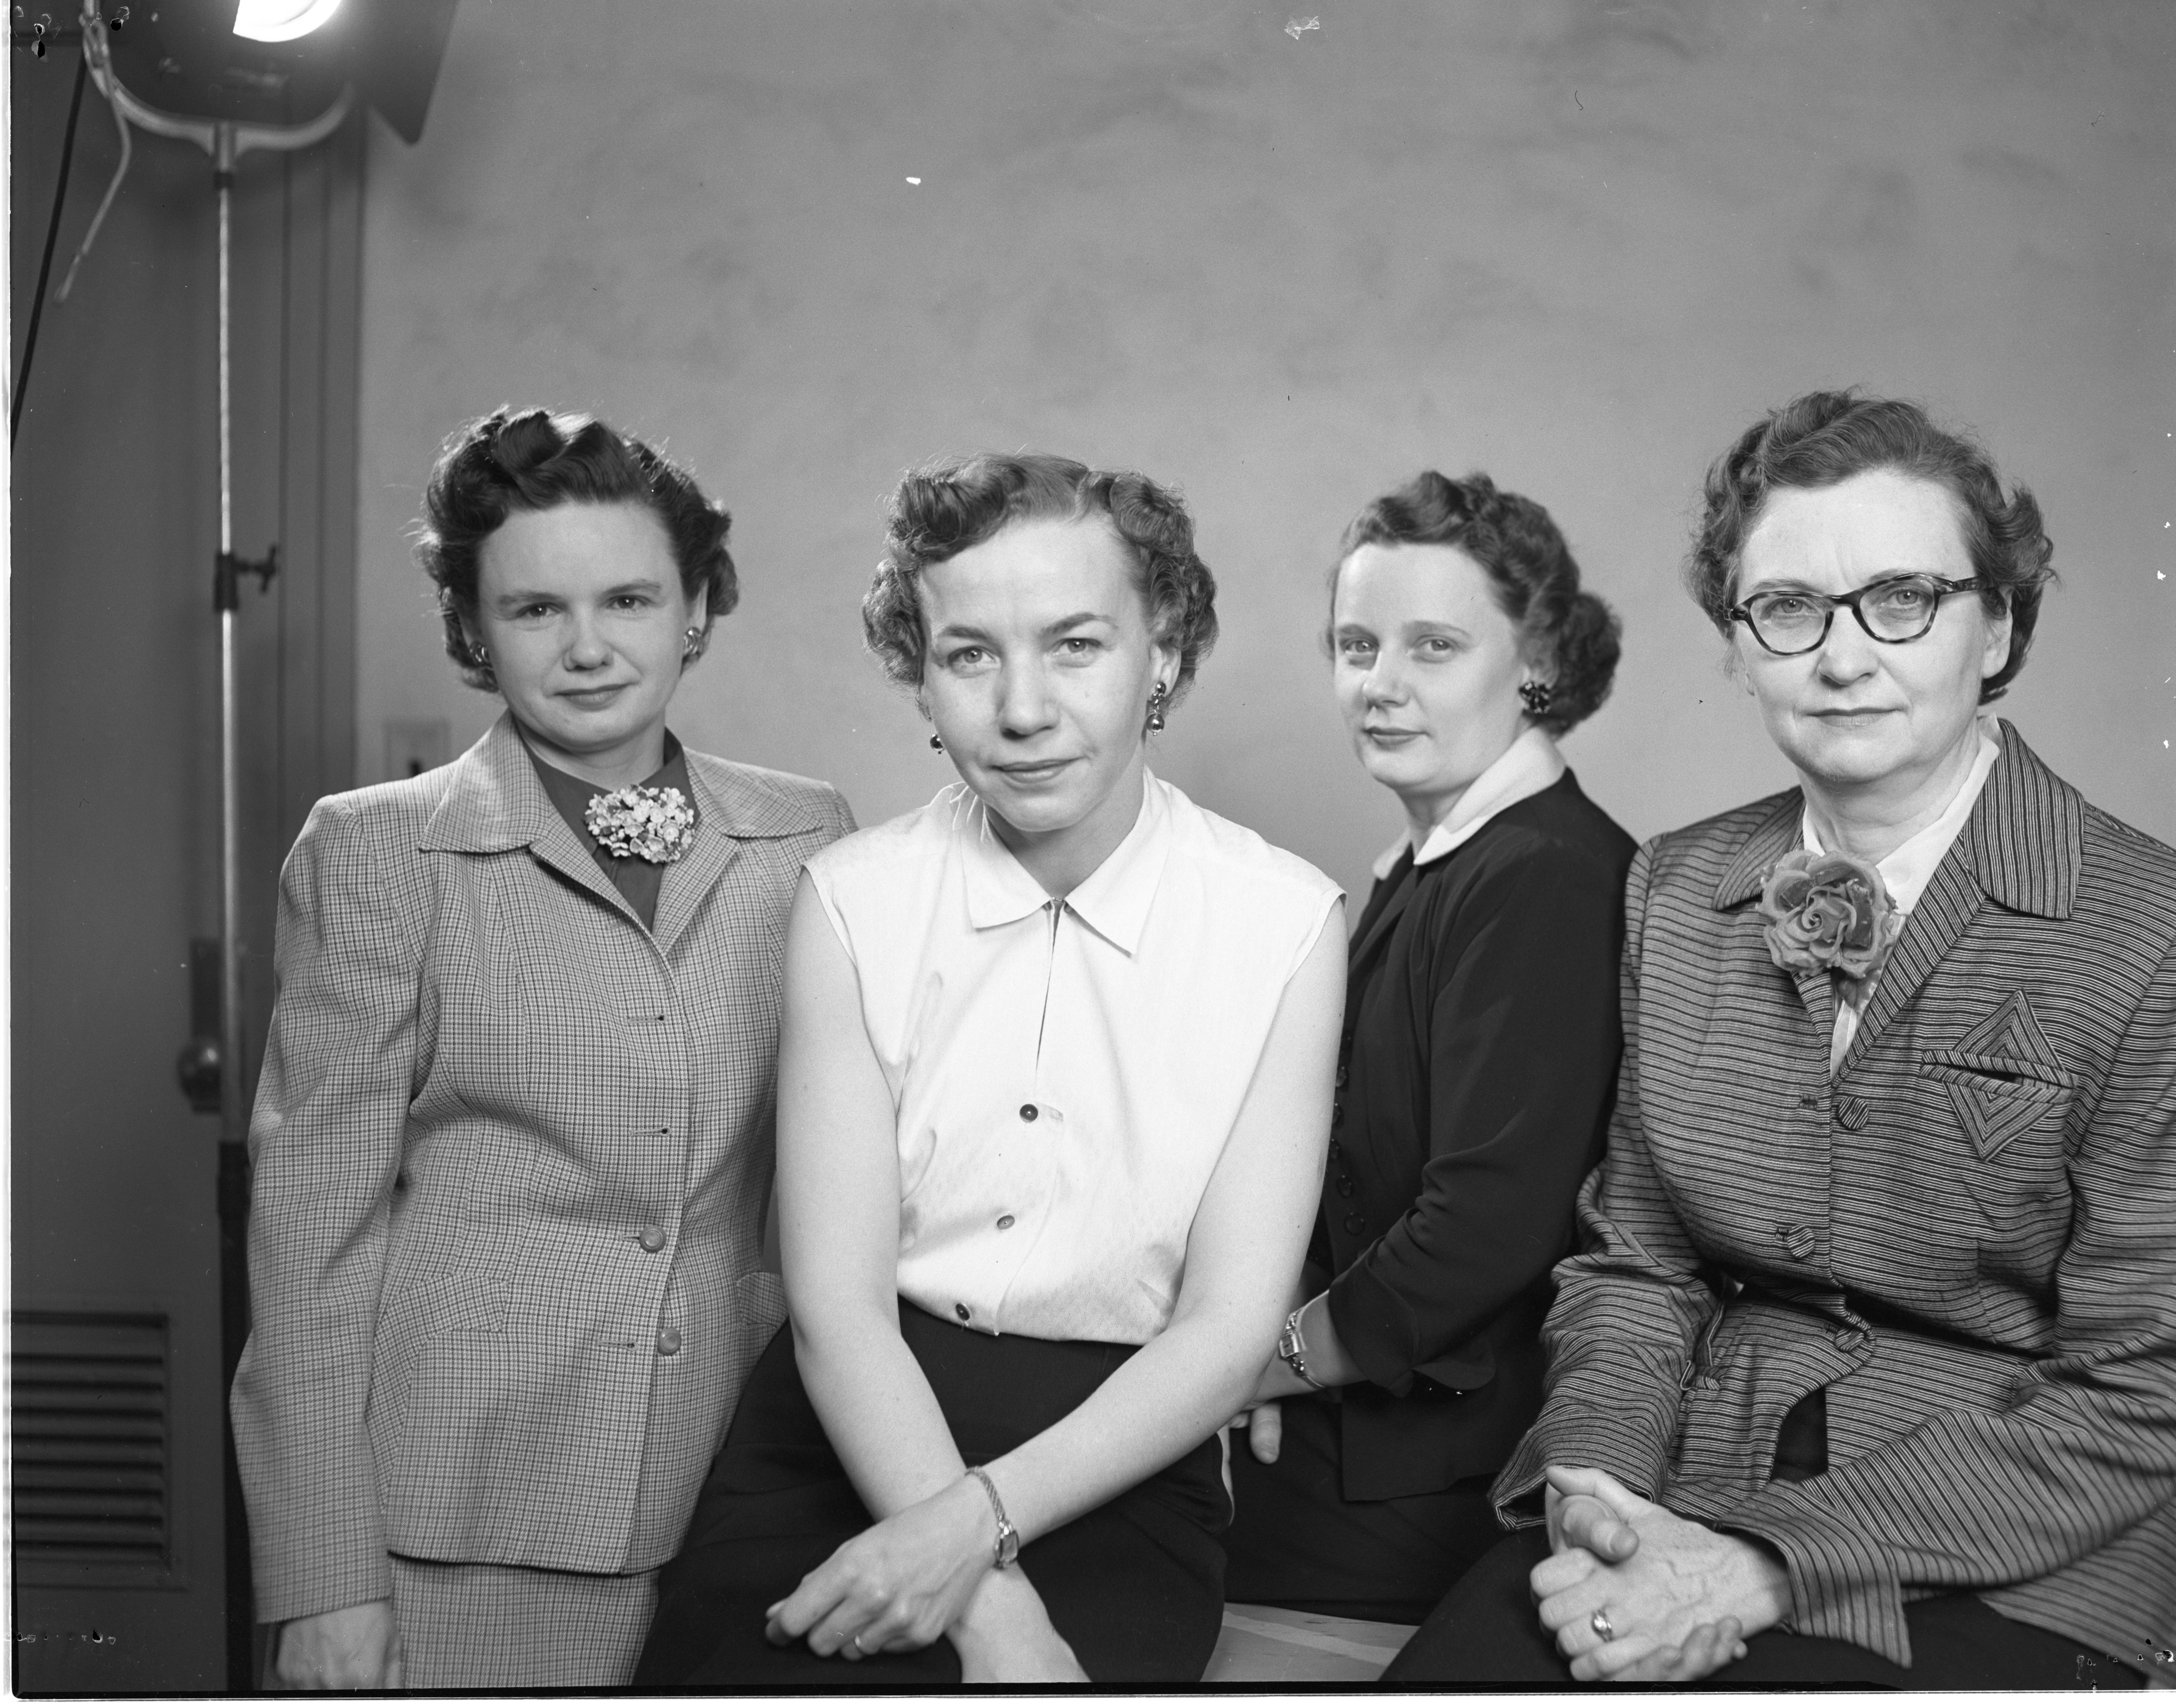 Newly Elected League Of Women Voters Officers, March 1953 image